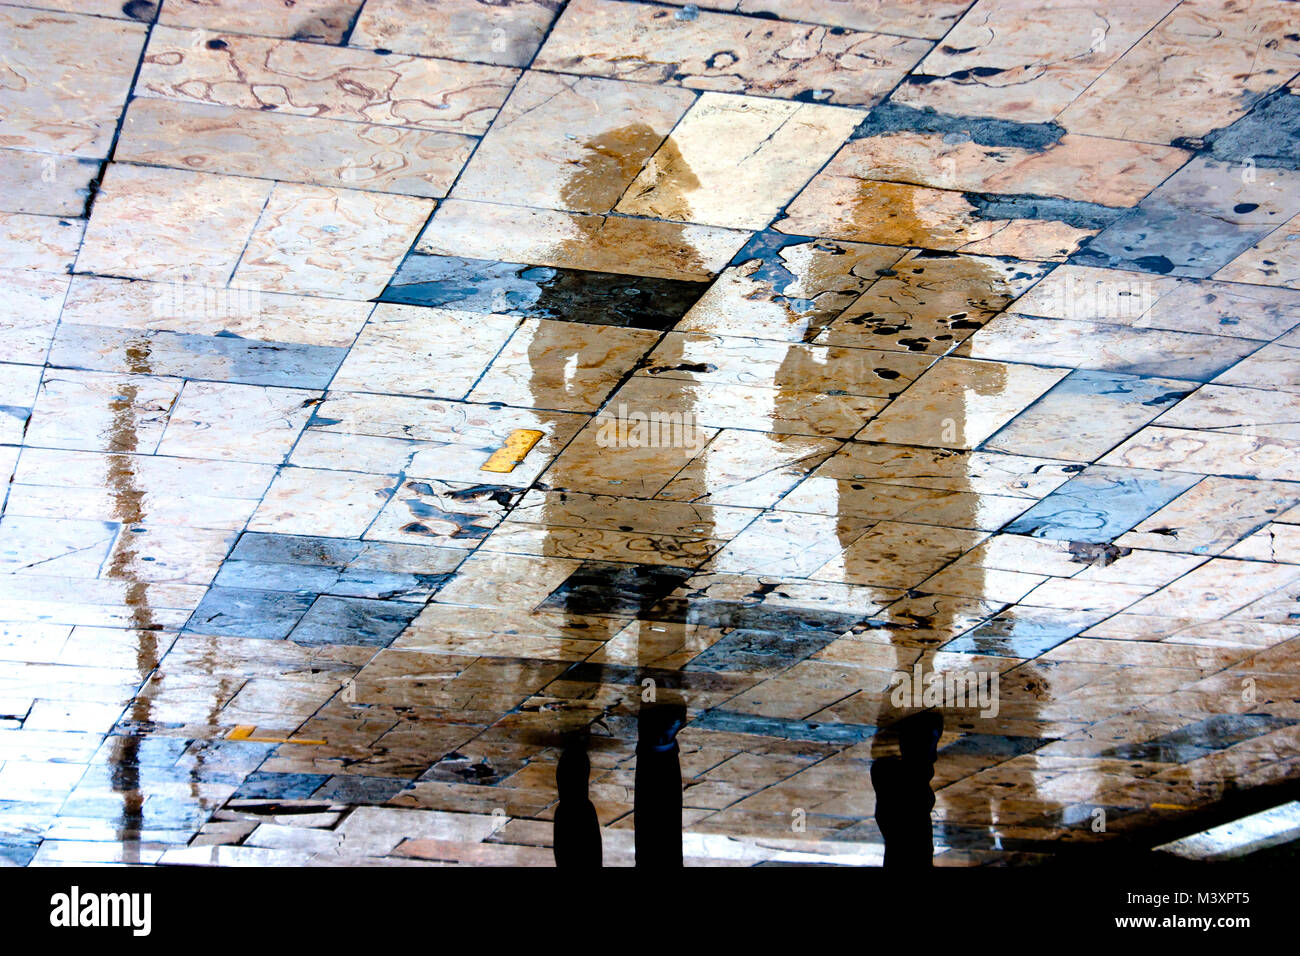 Blurry rainy day, a person walking under umbrella reflection silhouettes on wet city square  in high contrast Stock Photo